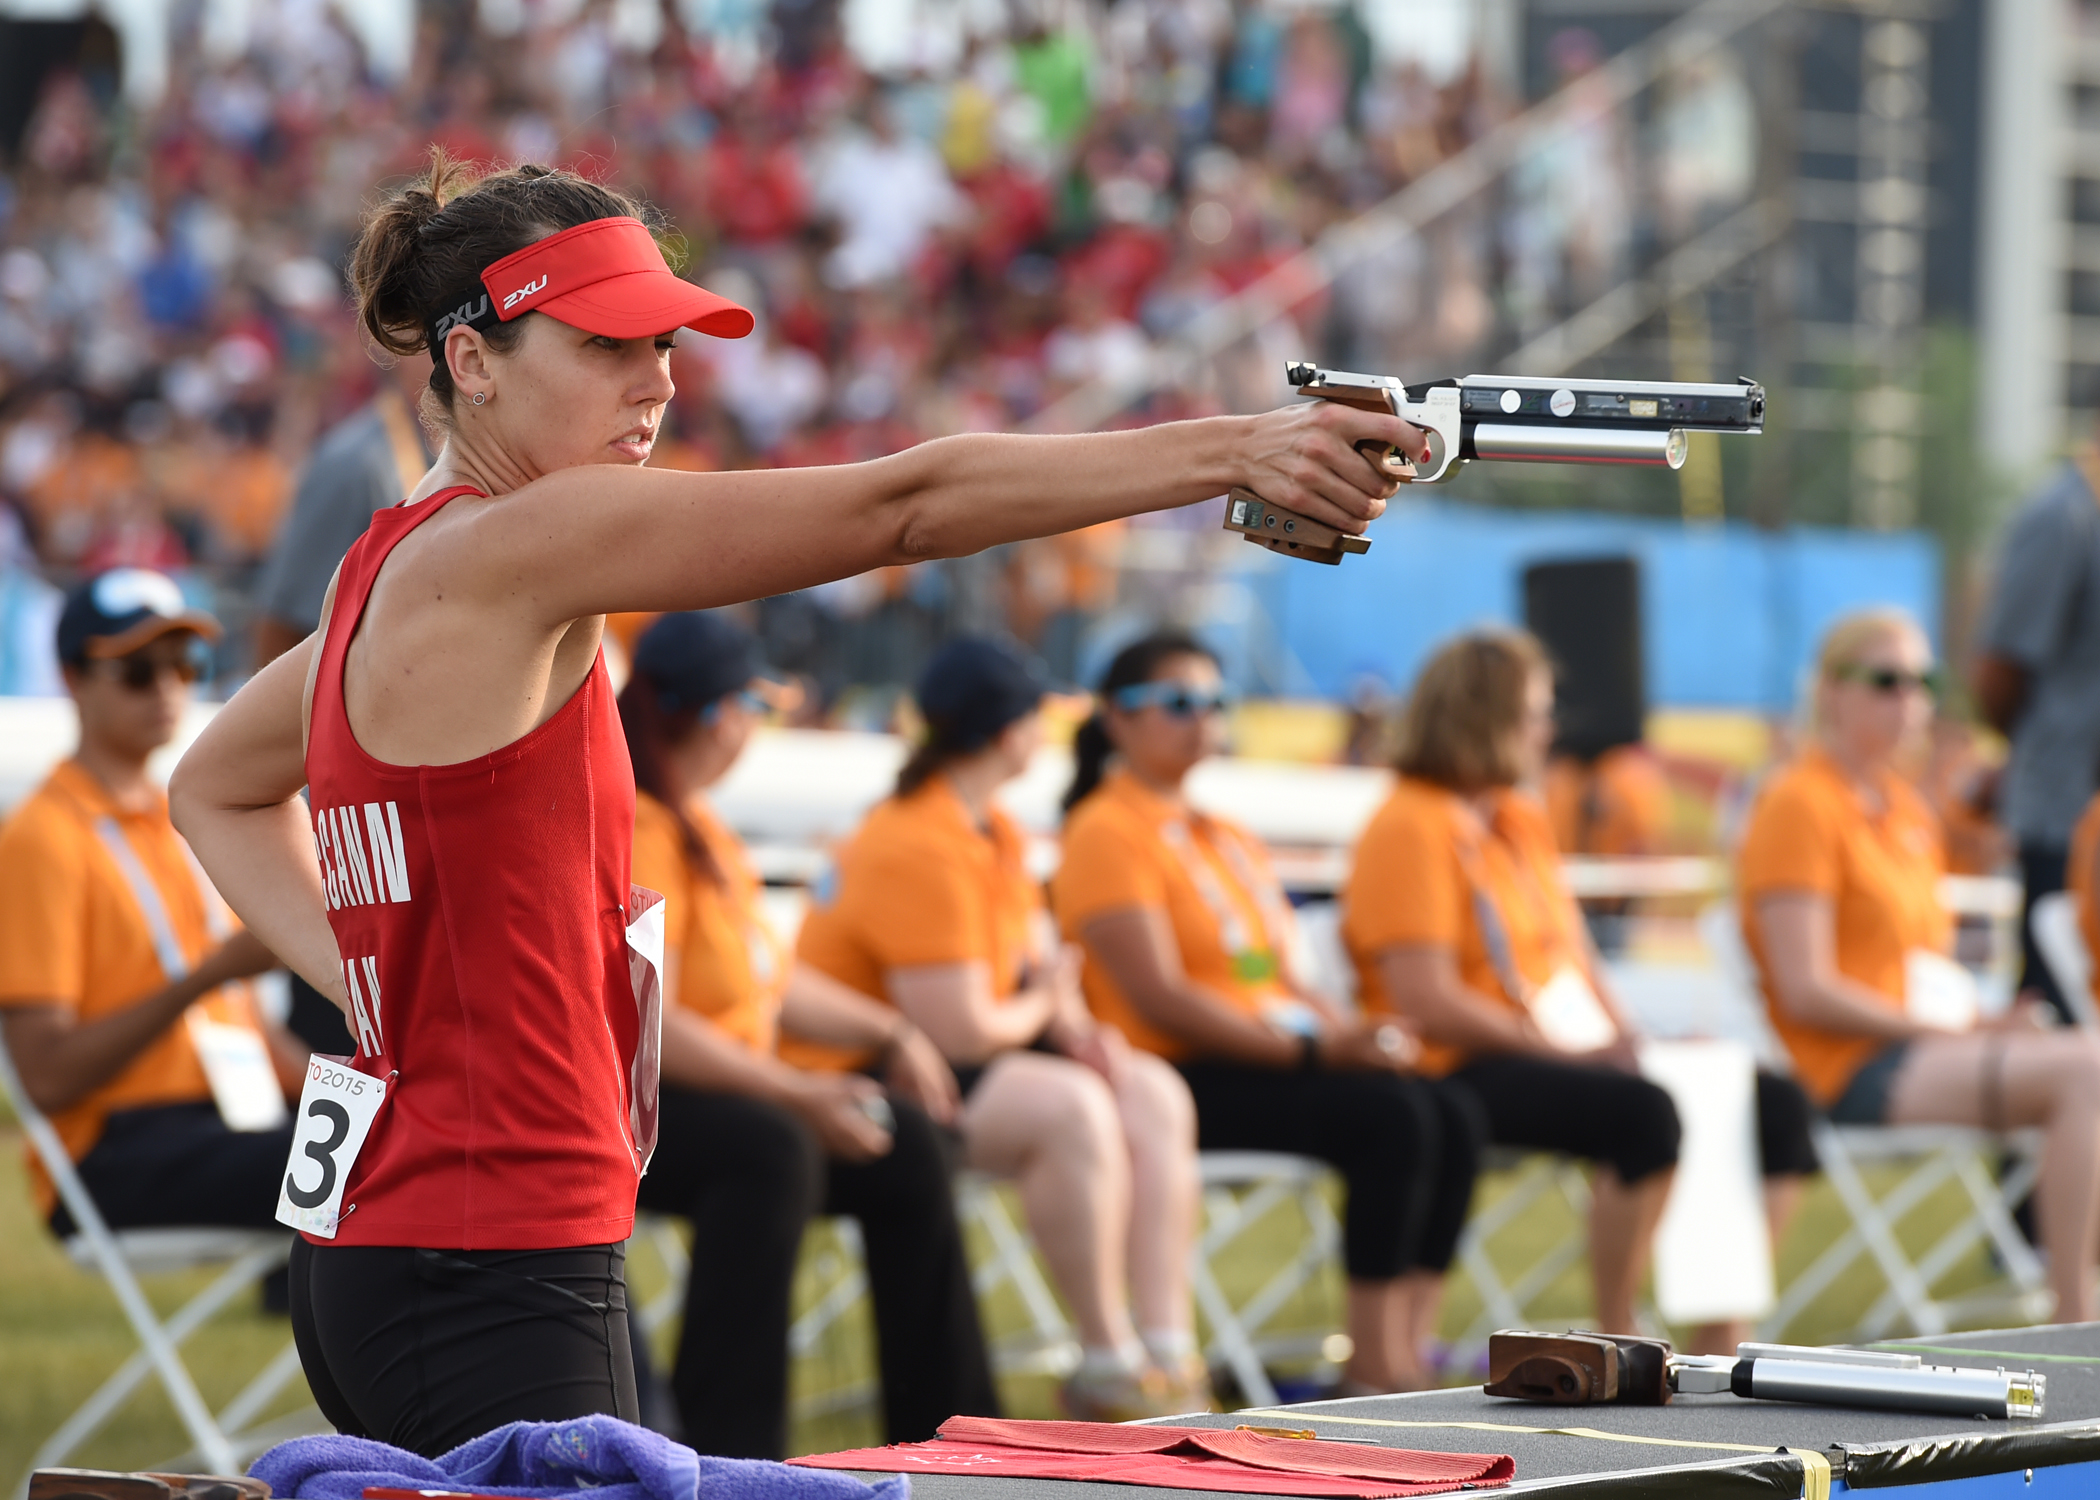 Melanie McCann competes in the Modern Pentathlon competition at the Toronto 2015 Pan Am Games. Jay Tse/COC